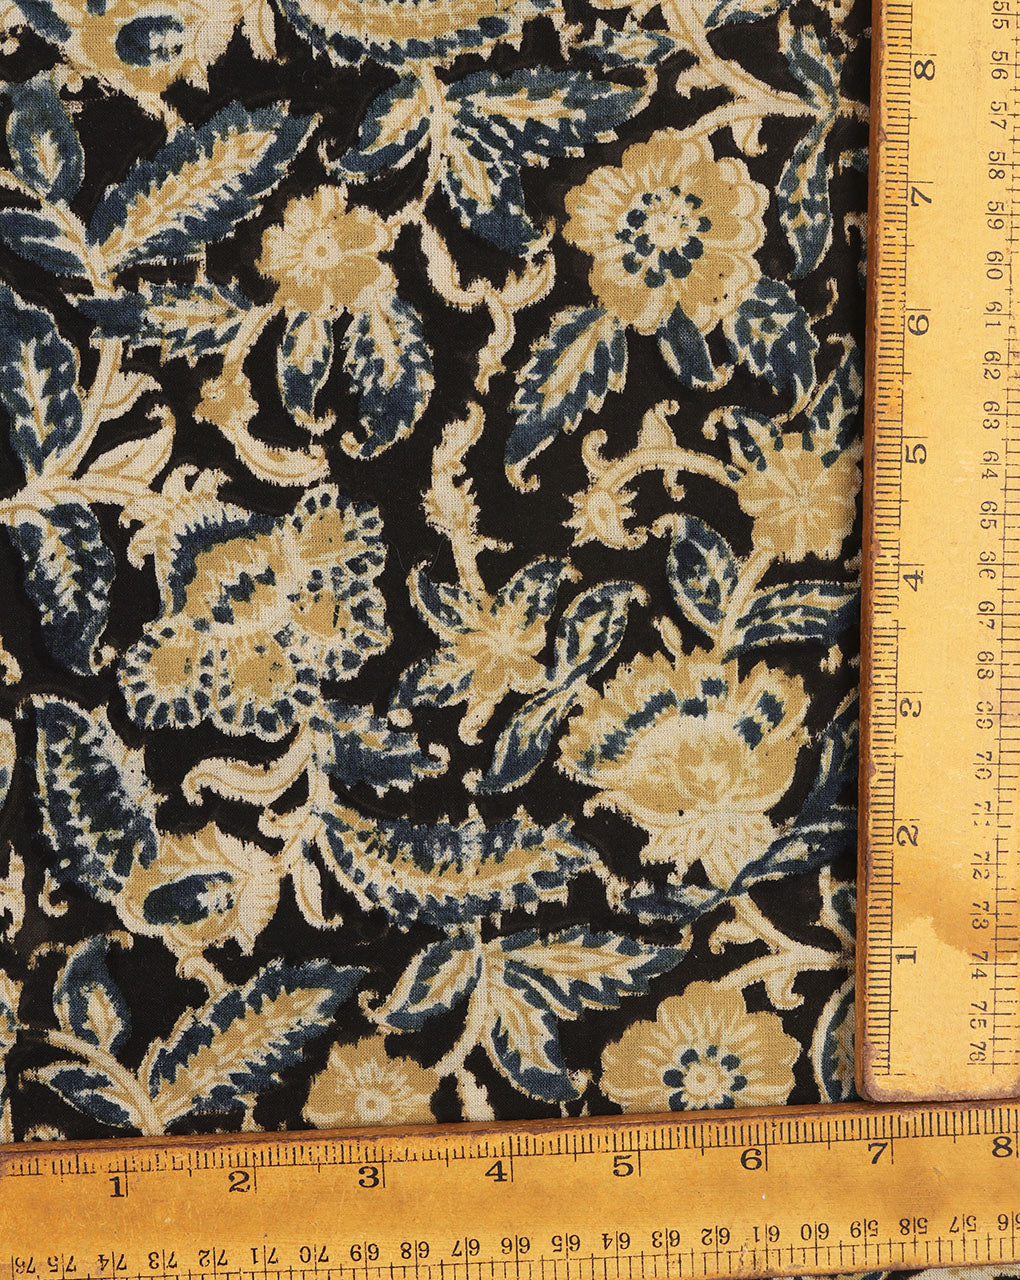 Black & Yellow Floral Kalamkari Hand Block Cotton Fabric - Fabriclore.com